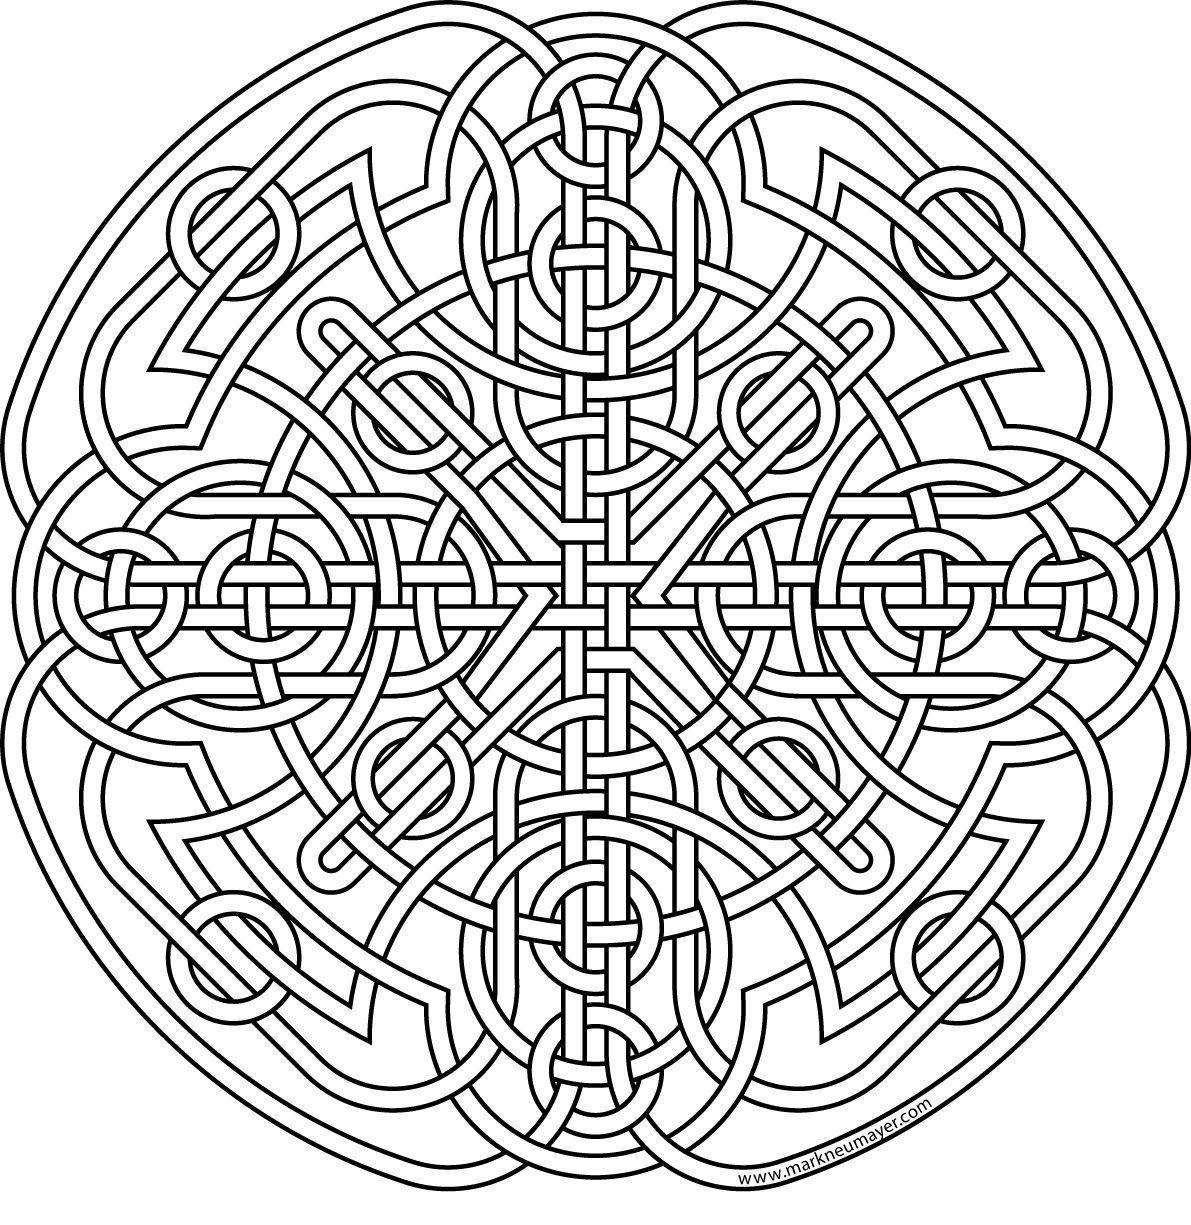 1191x1225 Celtic Knot Coloring Pages To Download And Print For Free Celta